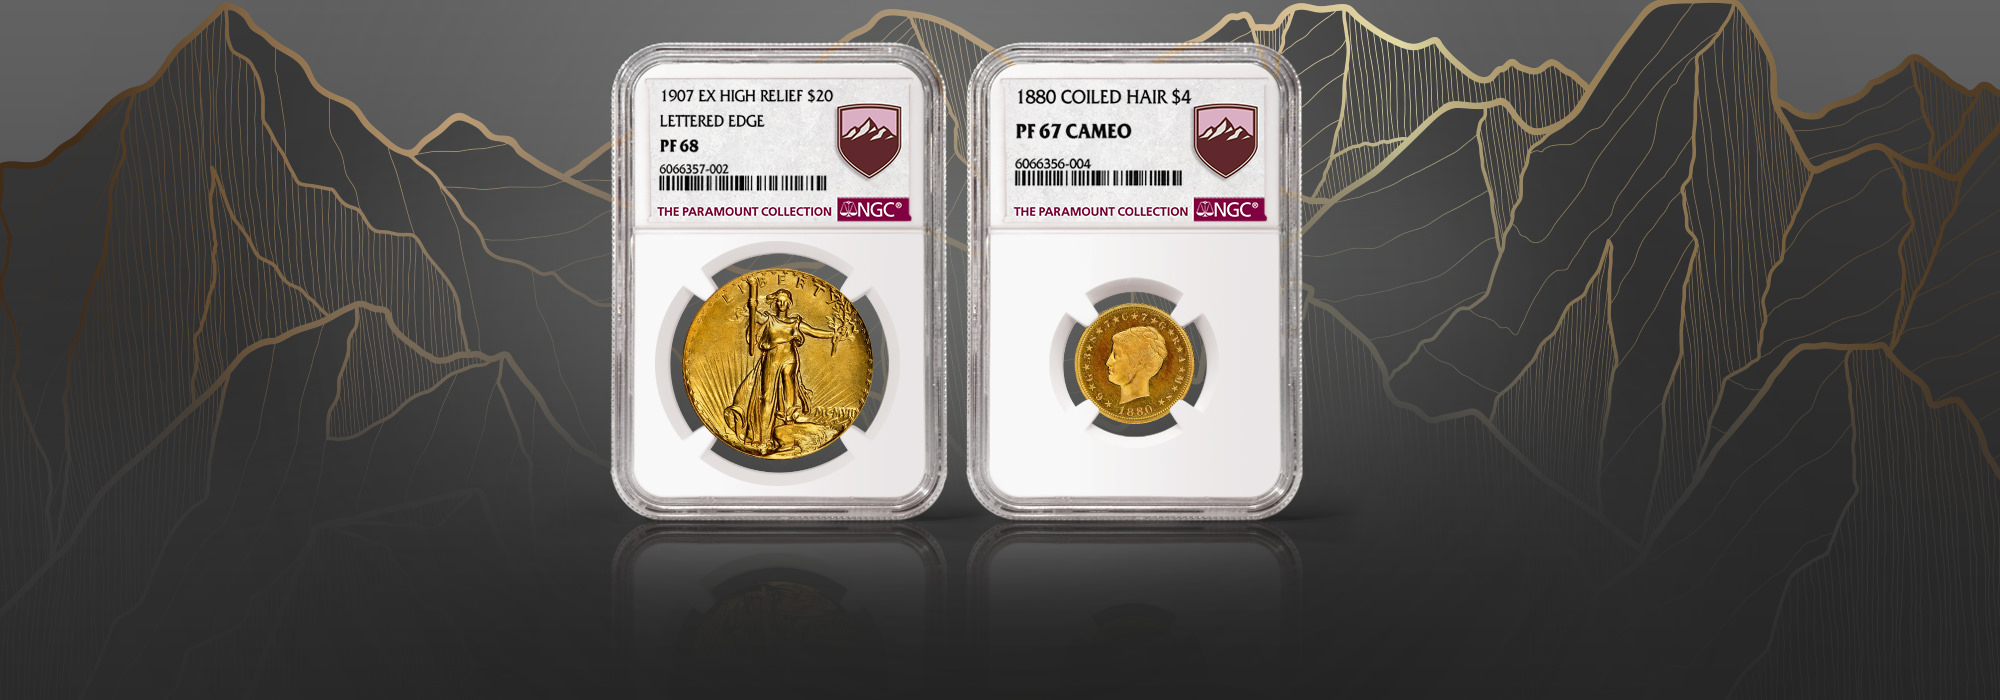 ngc coin prices